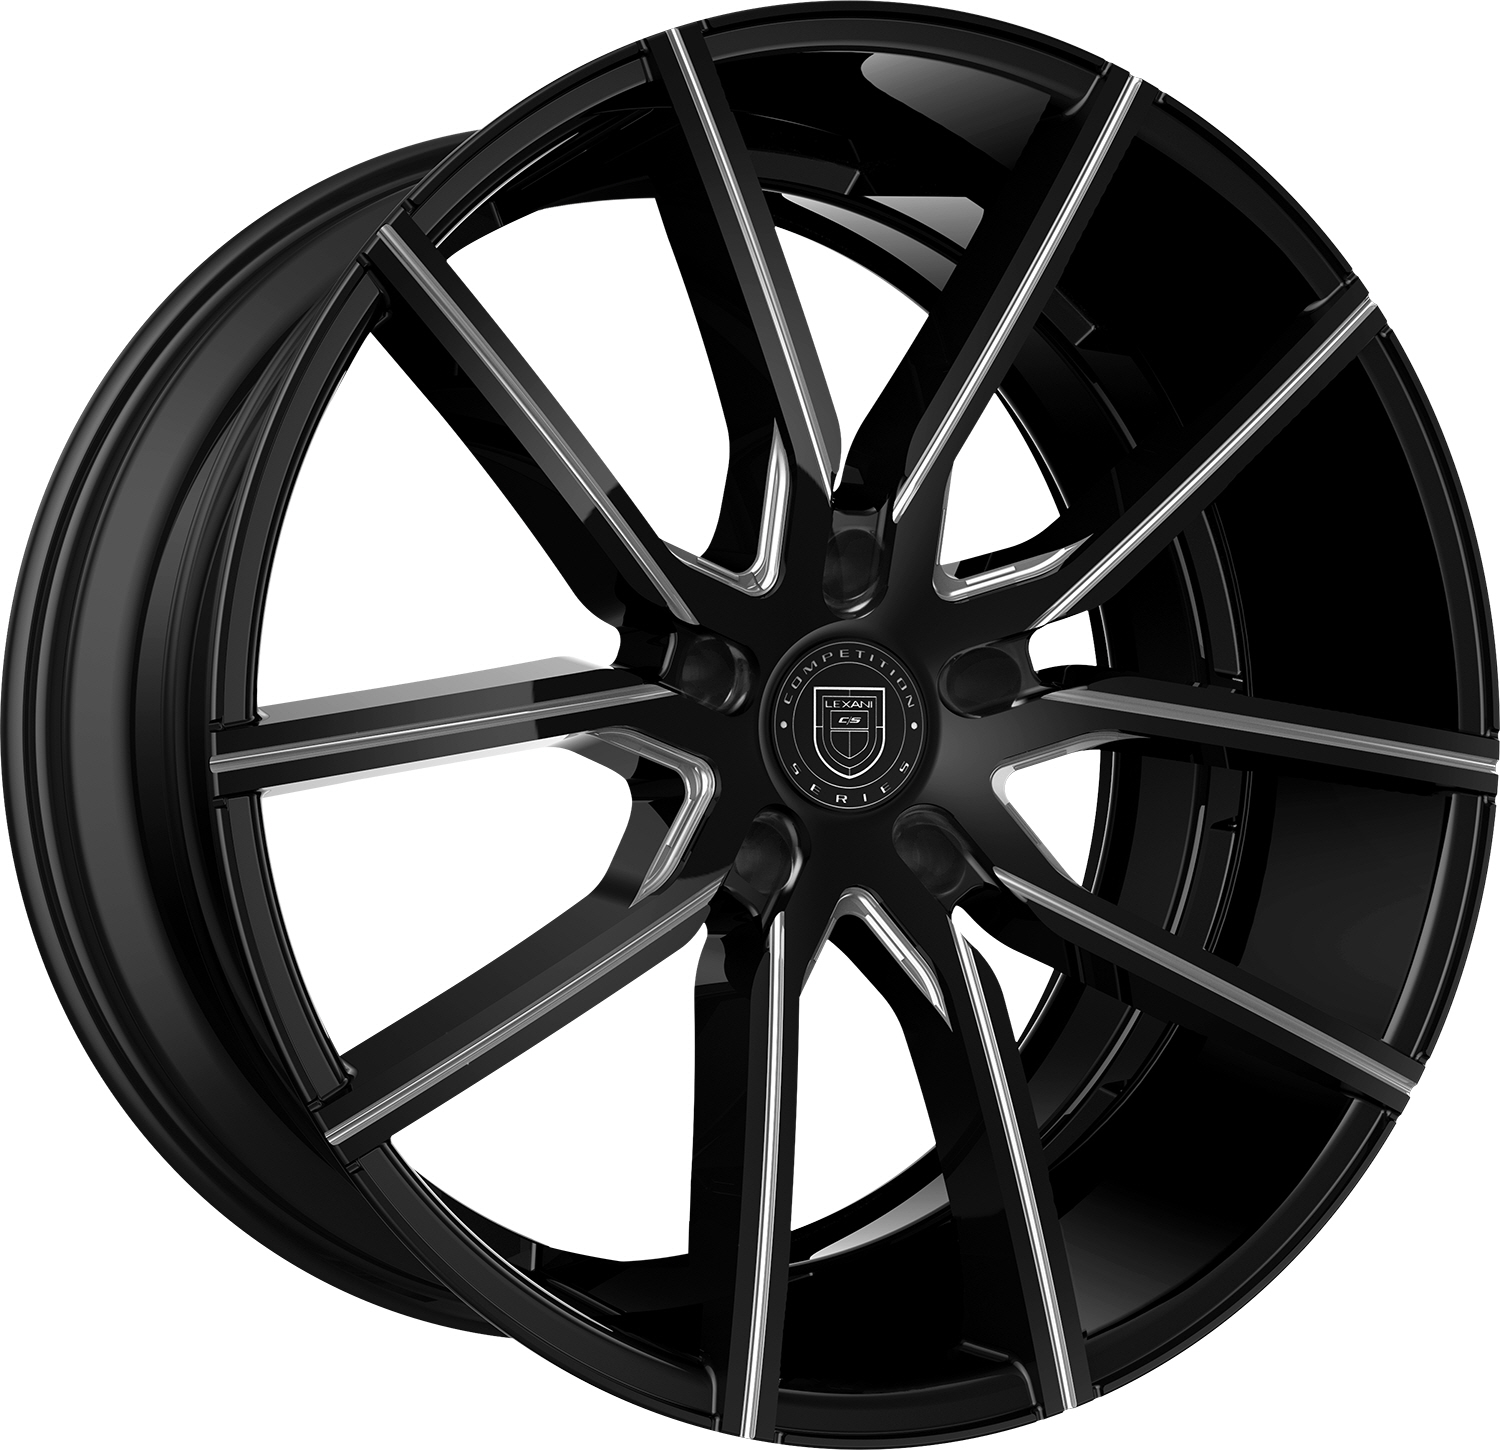 662 - GRAVITY  WHEELS AND RIMS PACKAGES